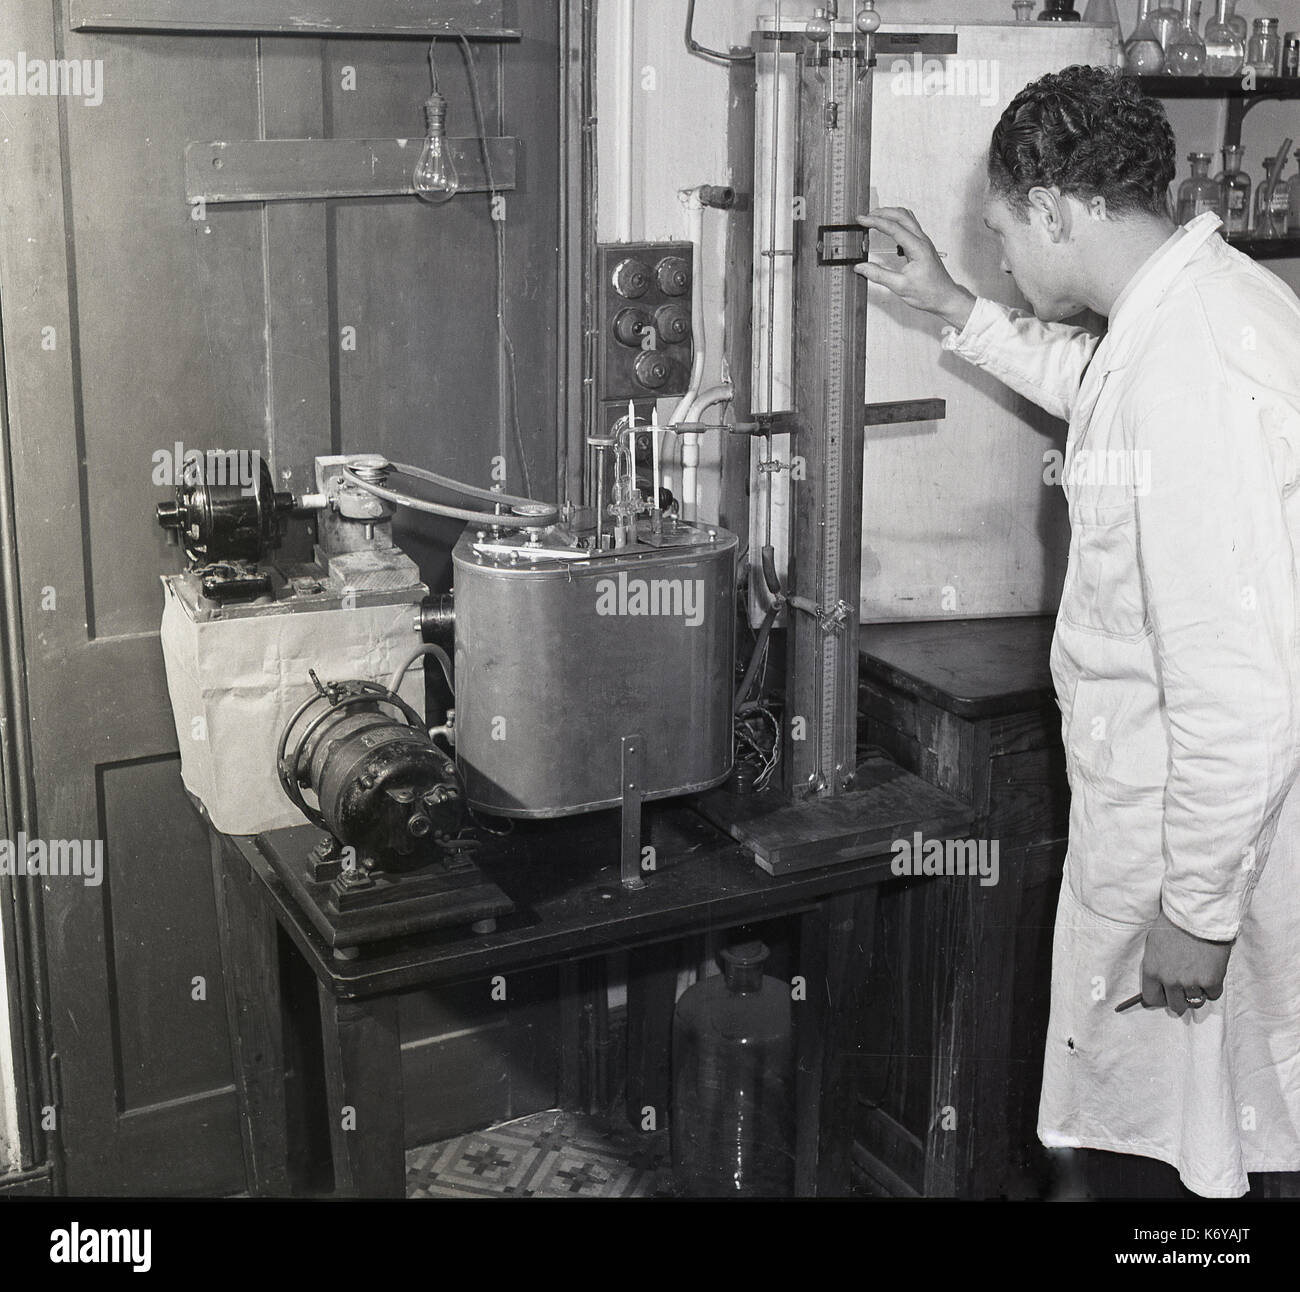 Early 1950s, food research, historical picture showing a scientist using apparatus of the time to study the rheological properties of chocolate. - Stock Image